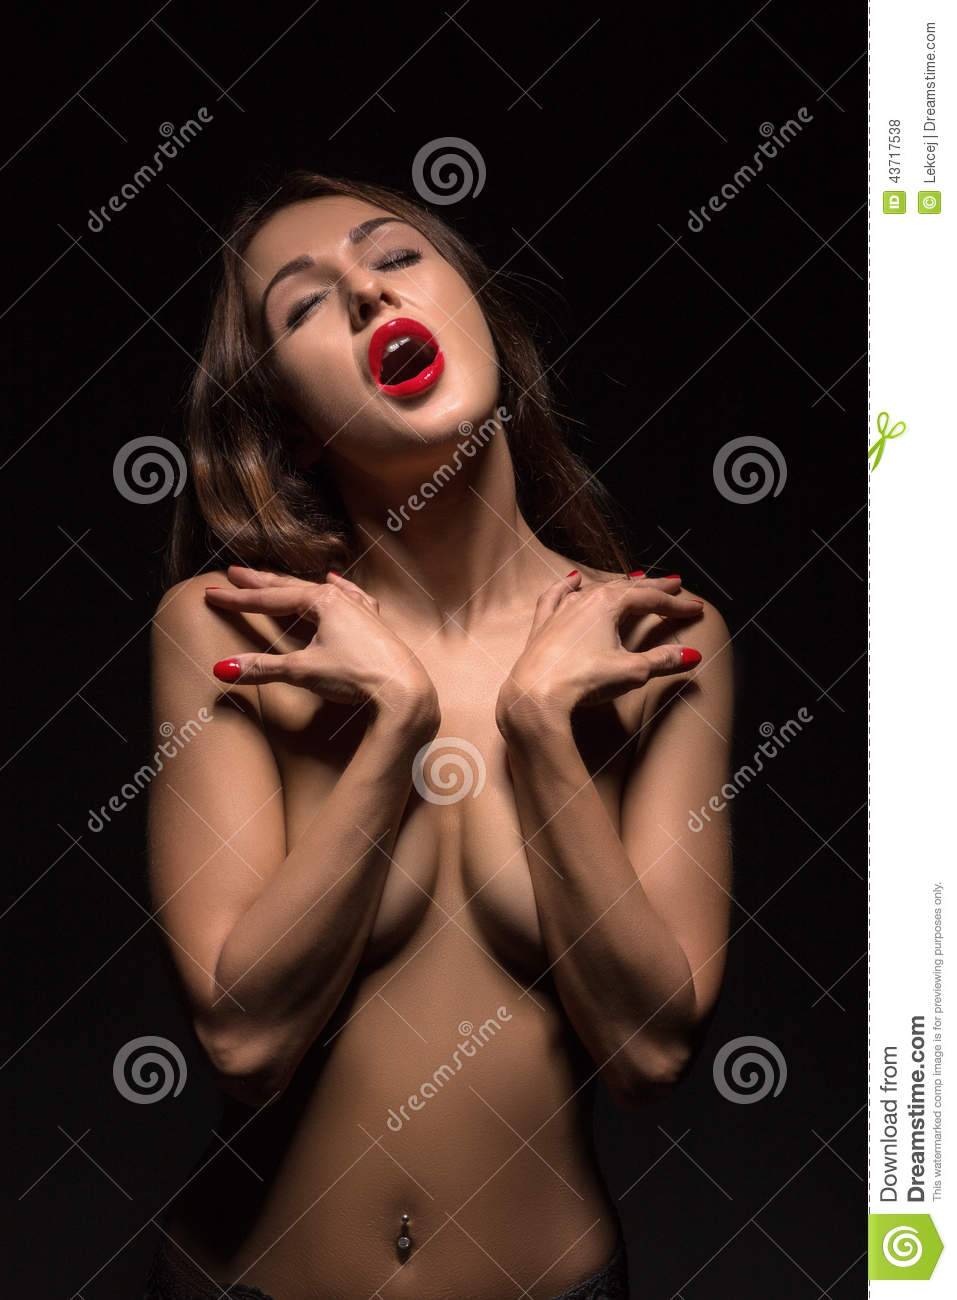 Luxury Woman Orgasm Stock Photo Image Of Lips, Flirting -6824